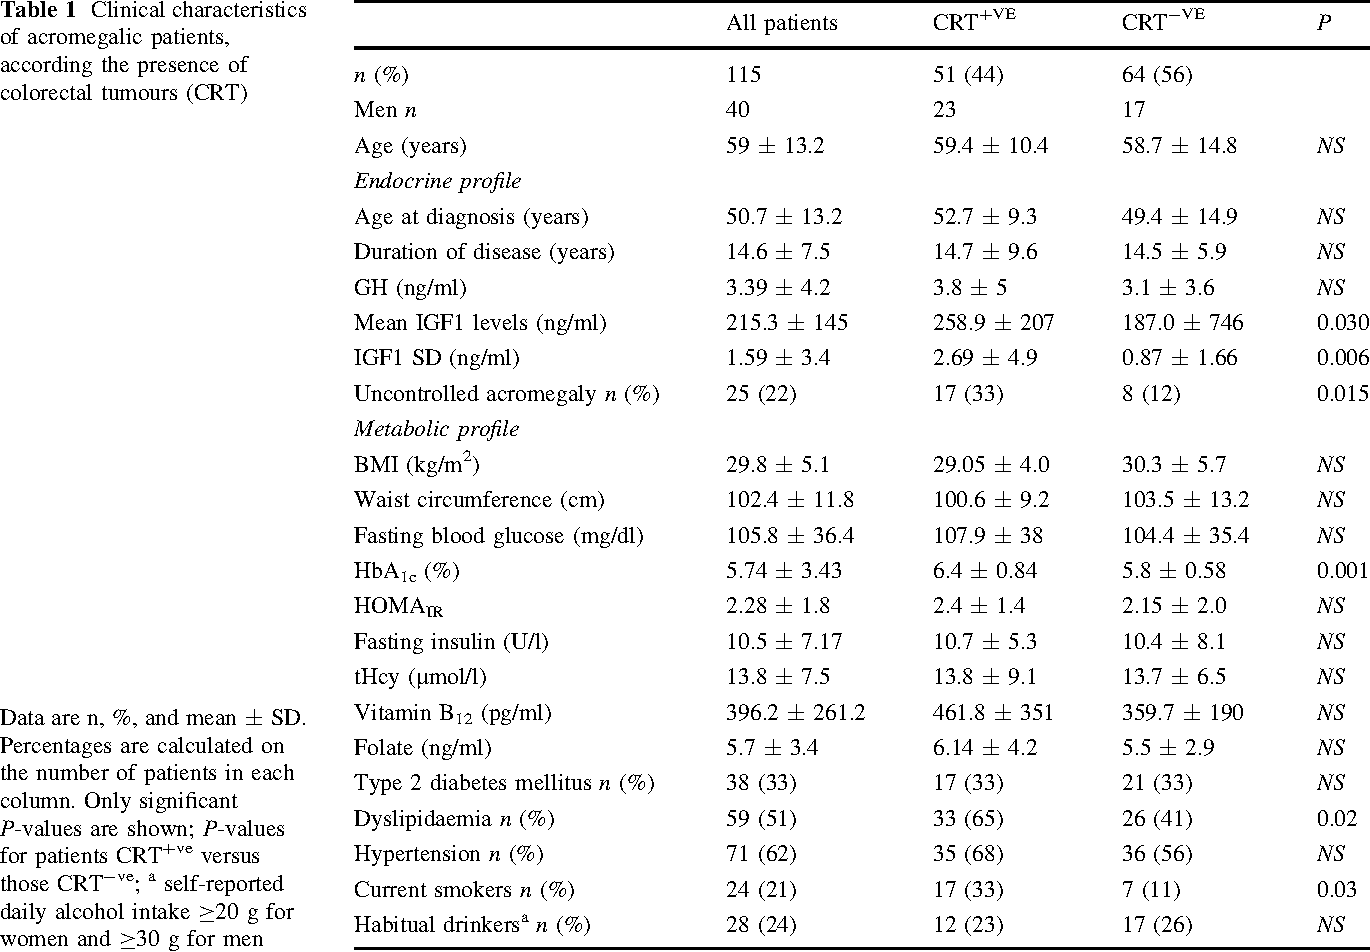 Mthfr C677t Polymorphism Folate Status And Colon Cancer Risk In Acromegalic Patients Semantic Scholar